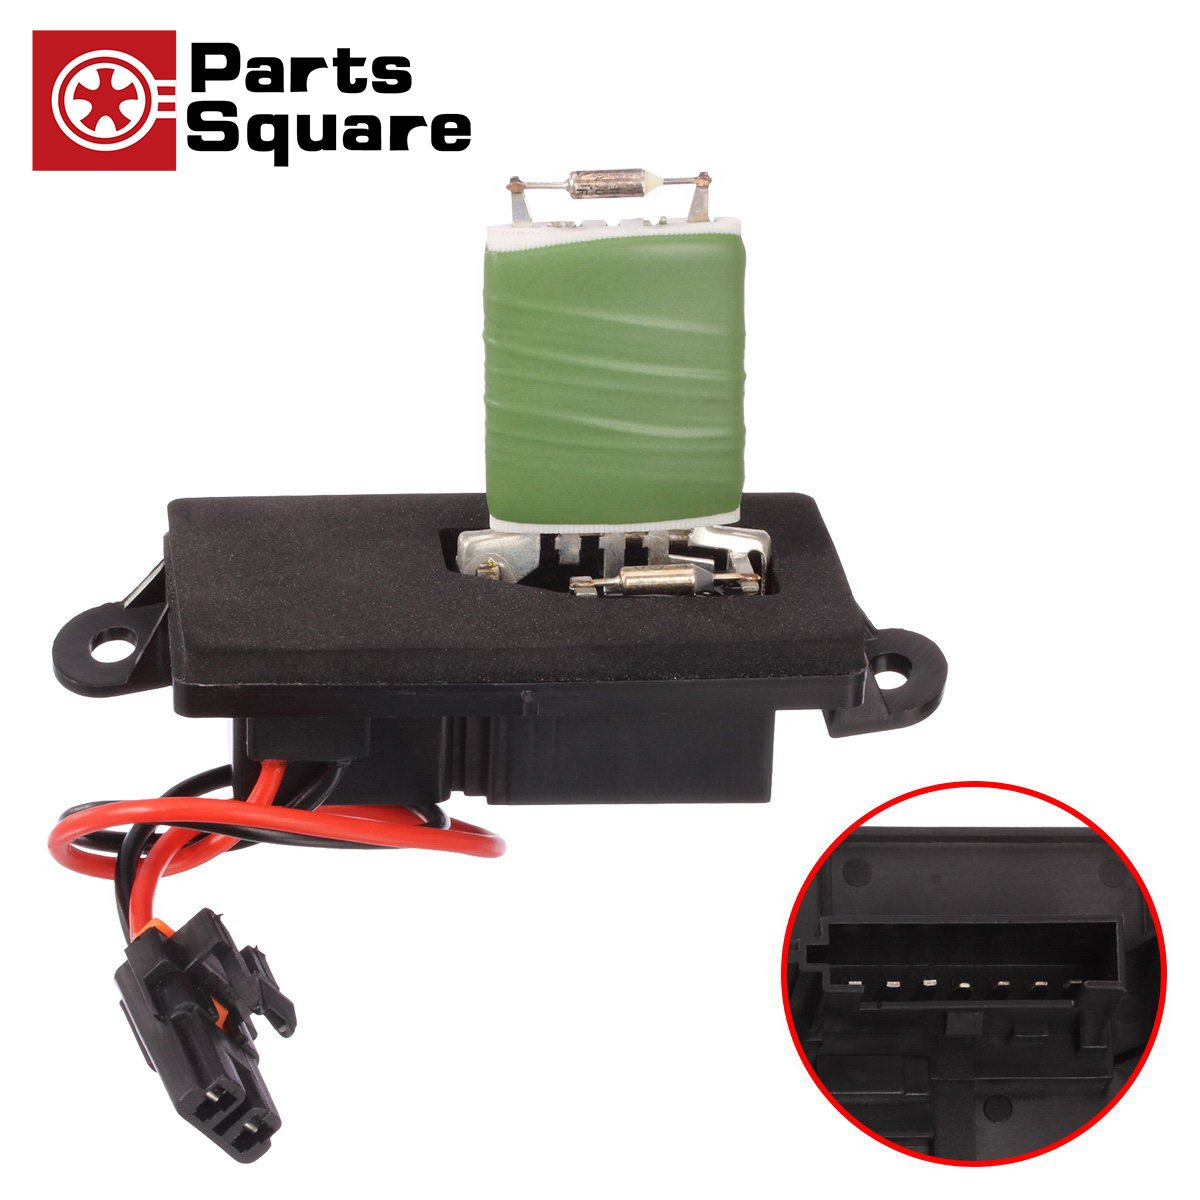 Partssquare Manual Blower Motor Resistor 3a1042 Ru371 Gmc Envoy Parts Diagram Auto Diagrams Besides R 89019089 Replacement For 2001 2002 Yukon Xl 1500 Chevrolet Suburban 2500